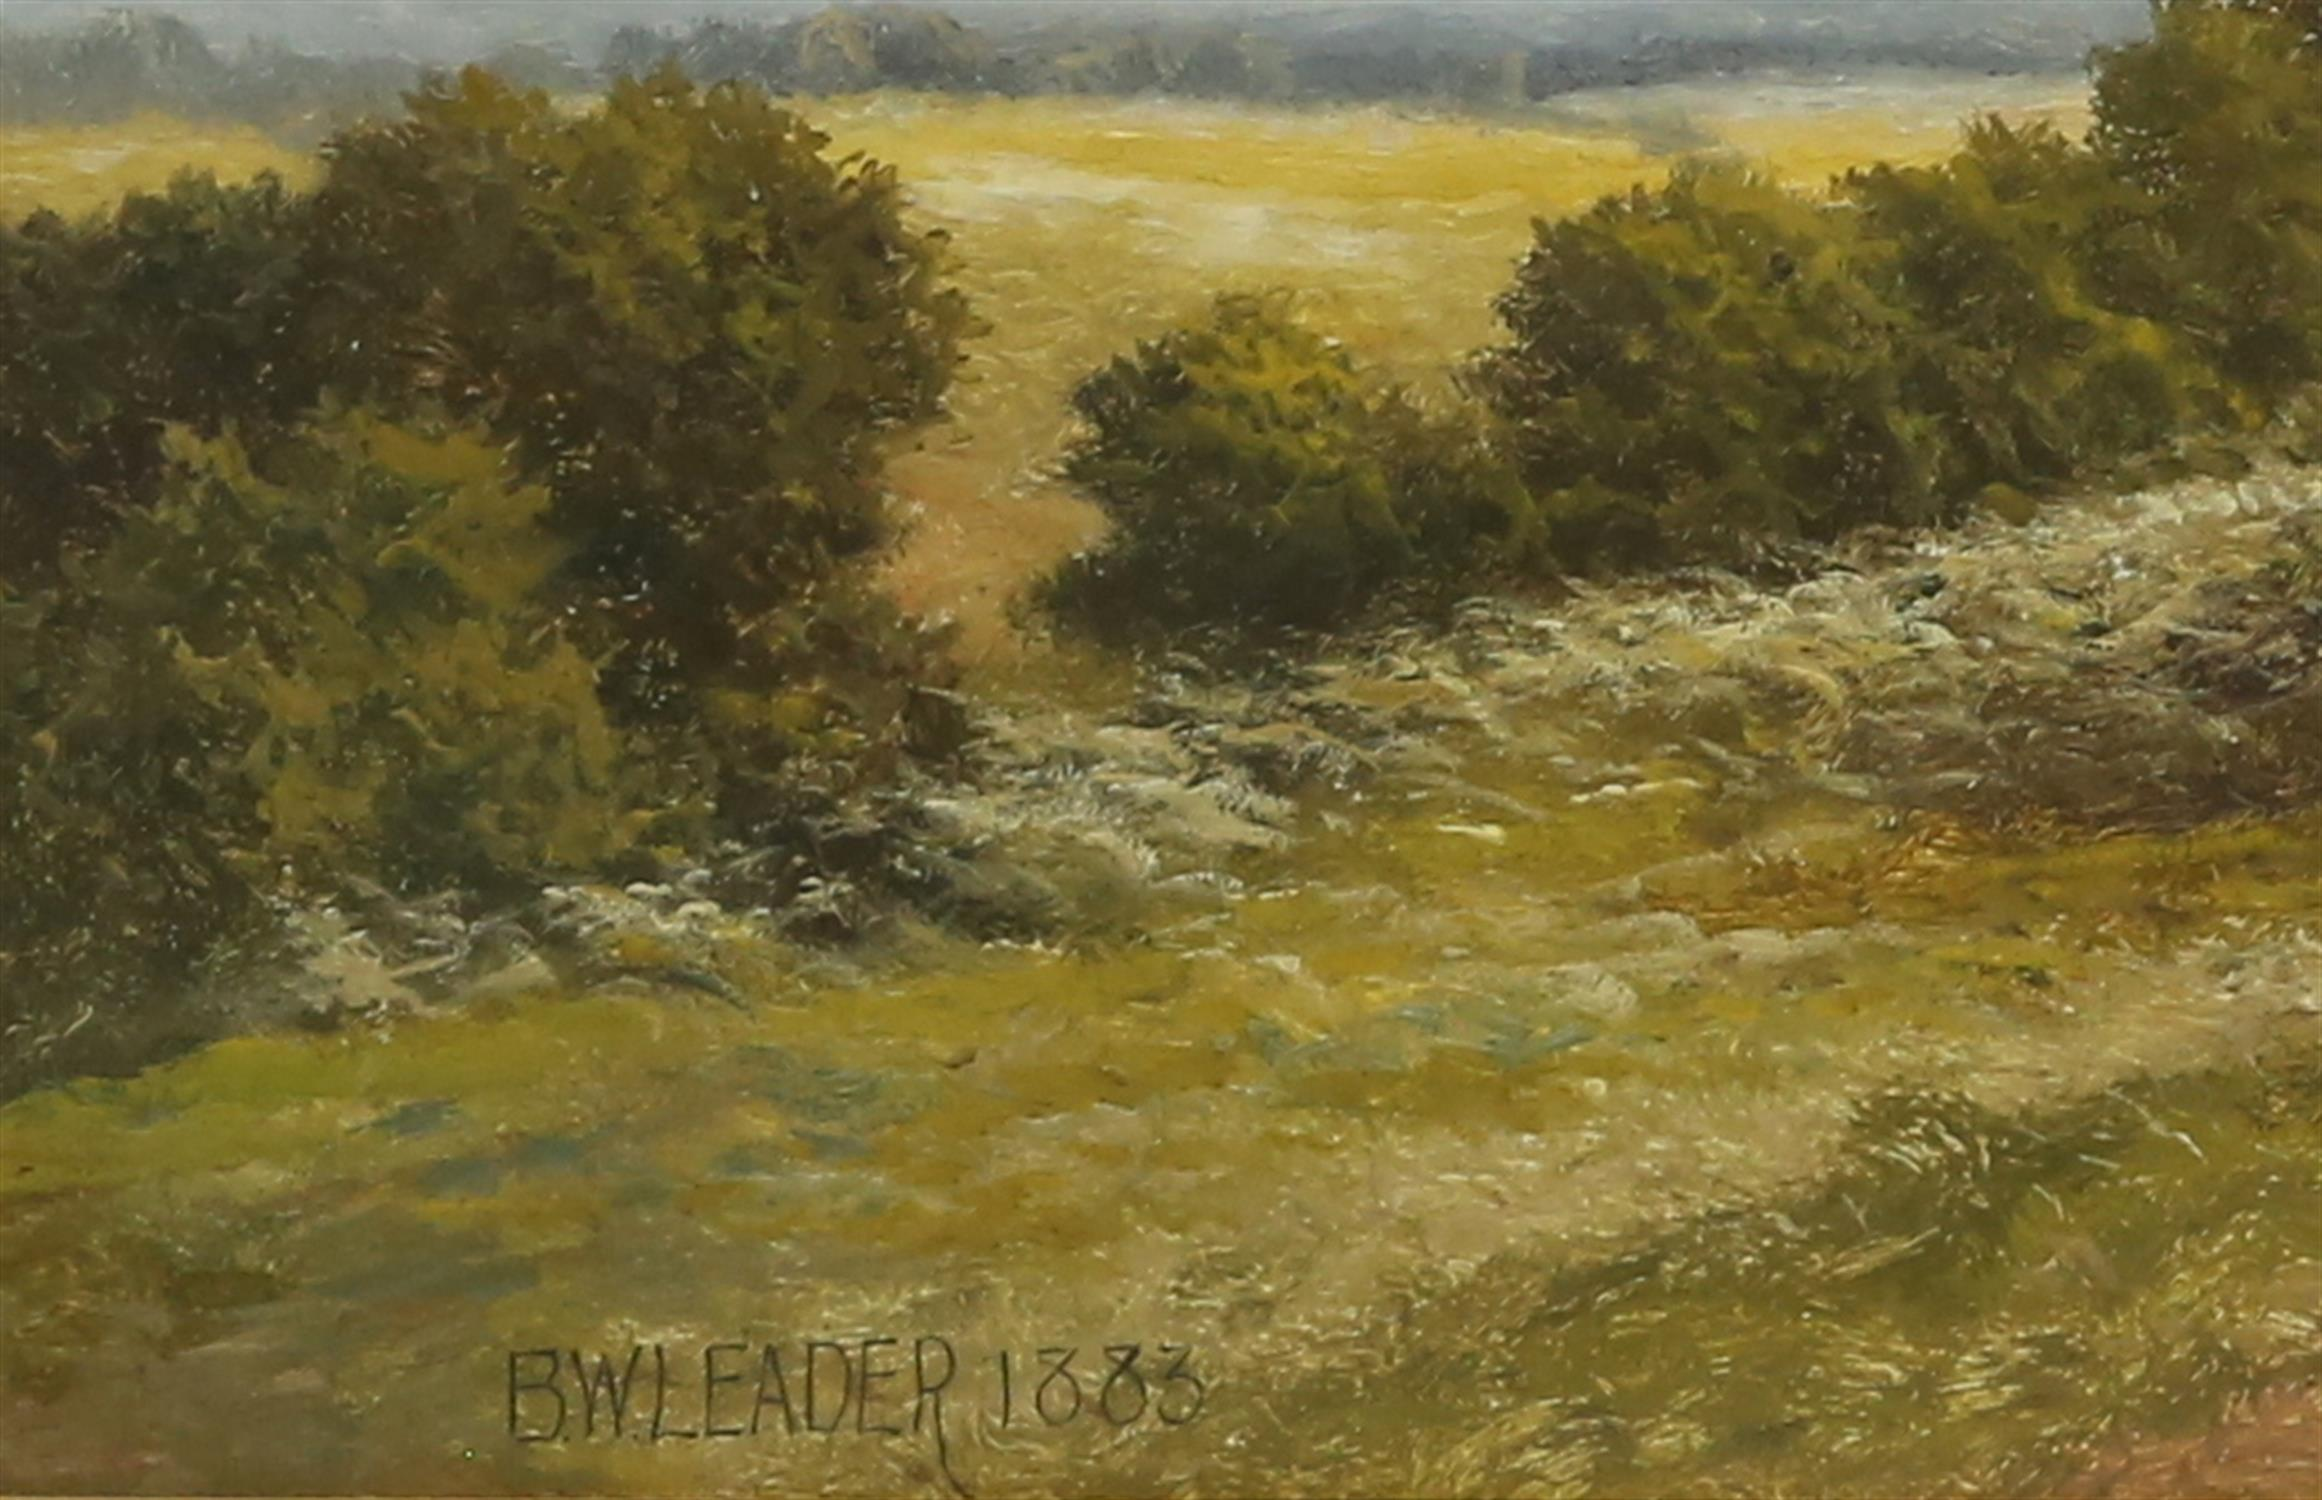 Benjamin Williams Leader RA (1831-1923), 'Blean Common, Kent', oil on canvas, signed and dated 1883 - Image 5 of 5